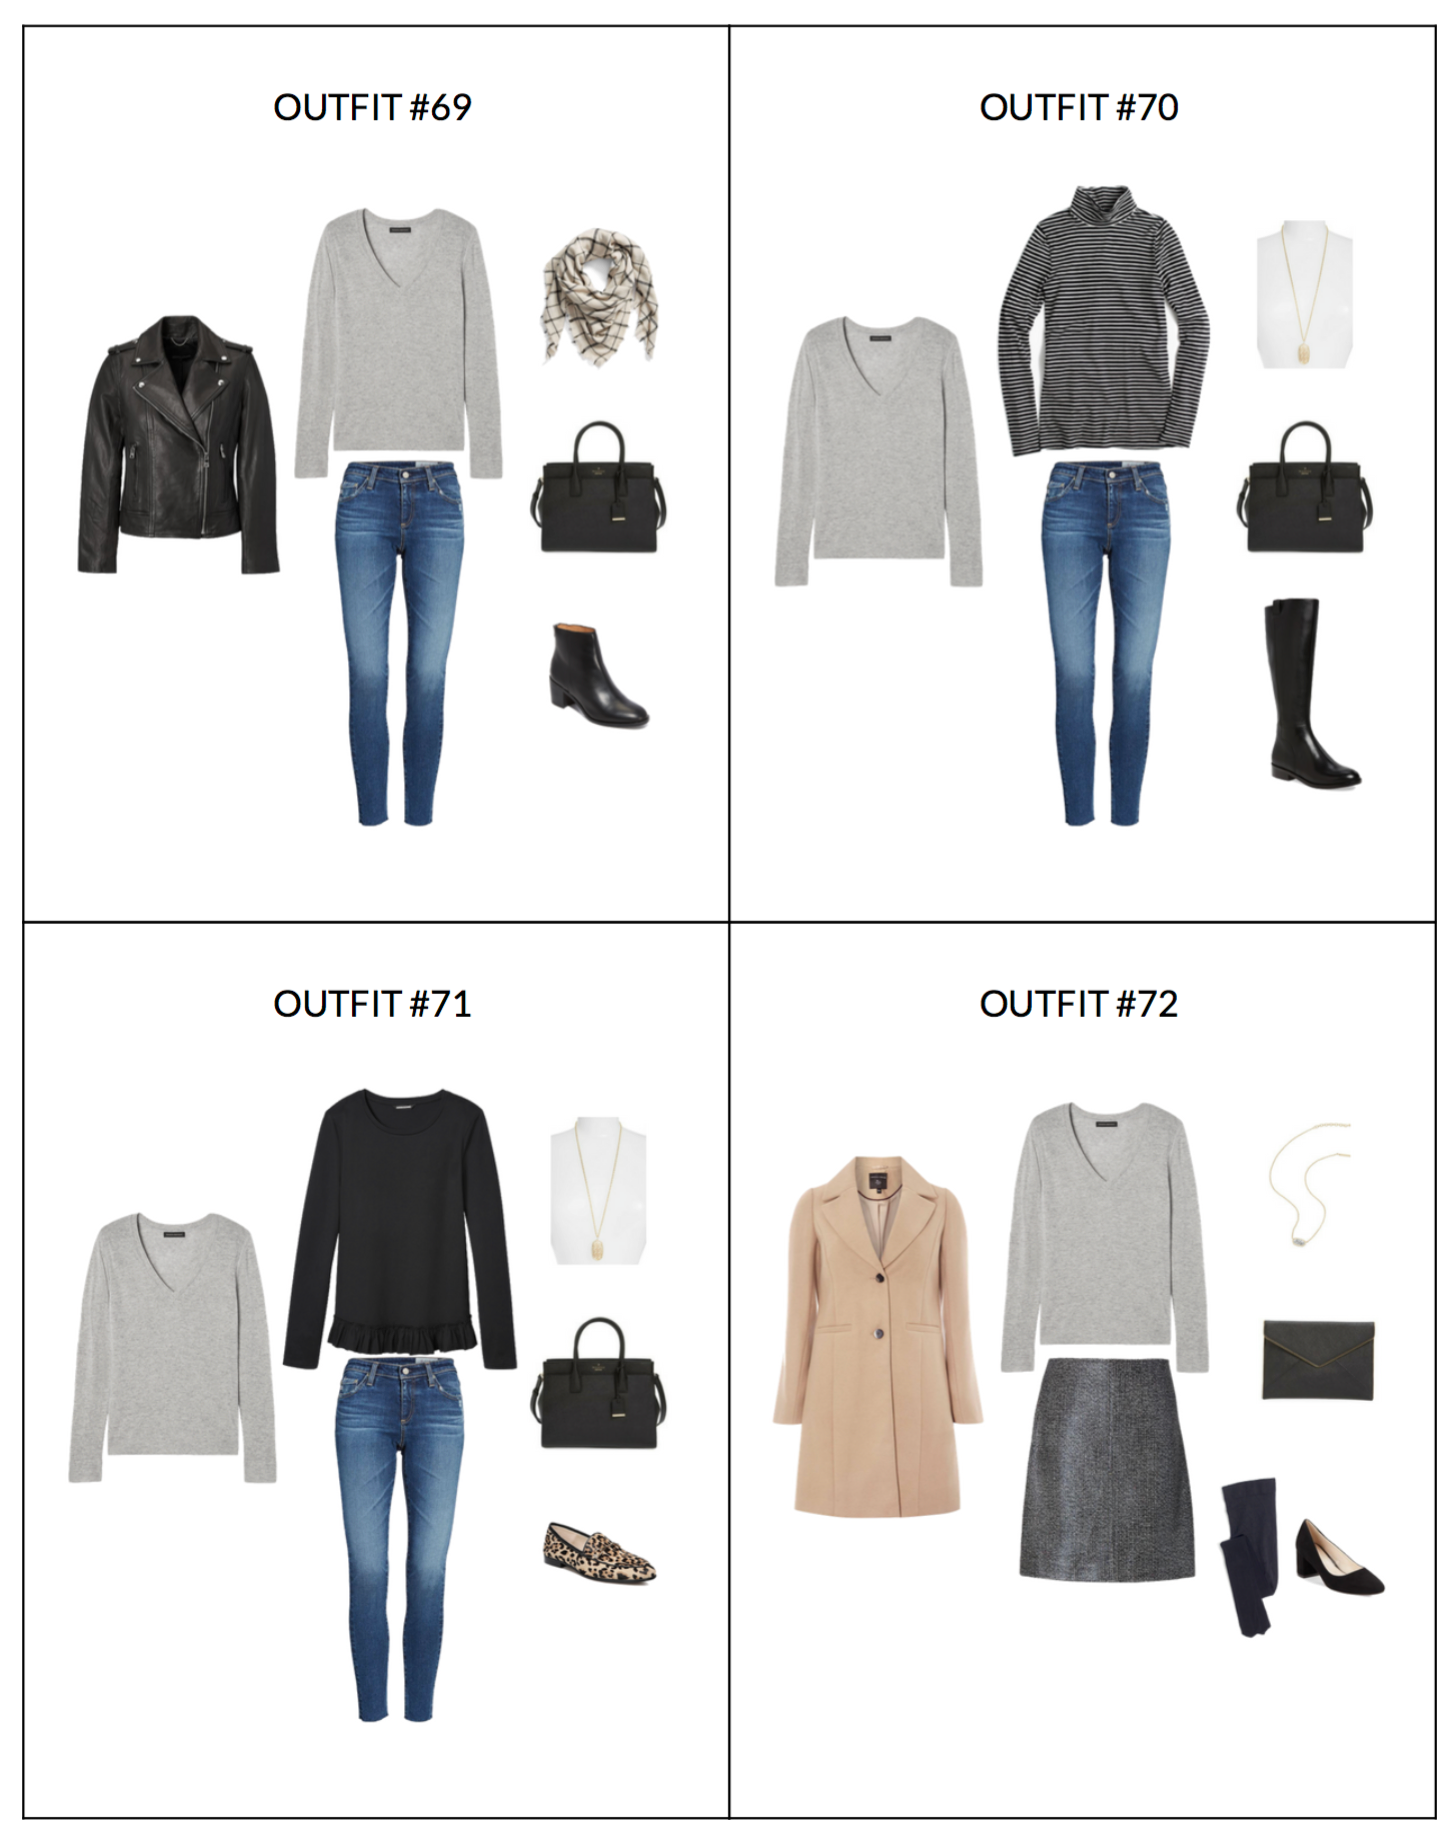 The French Minimalist Capsule Wardrobe Winter 2018 2019: The French Minimalist Capsule Wardrobe: Winter 2017/2018